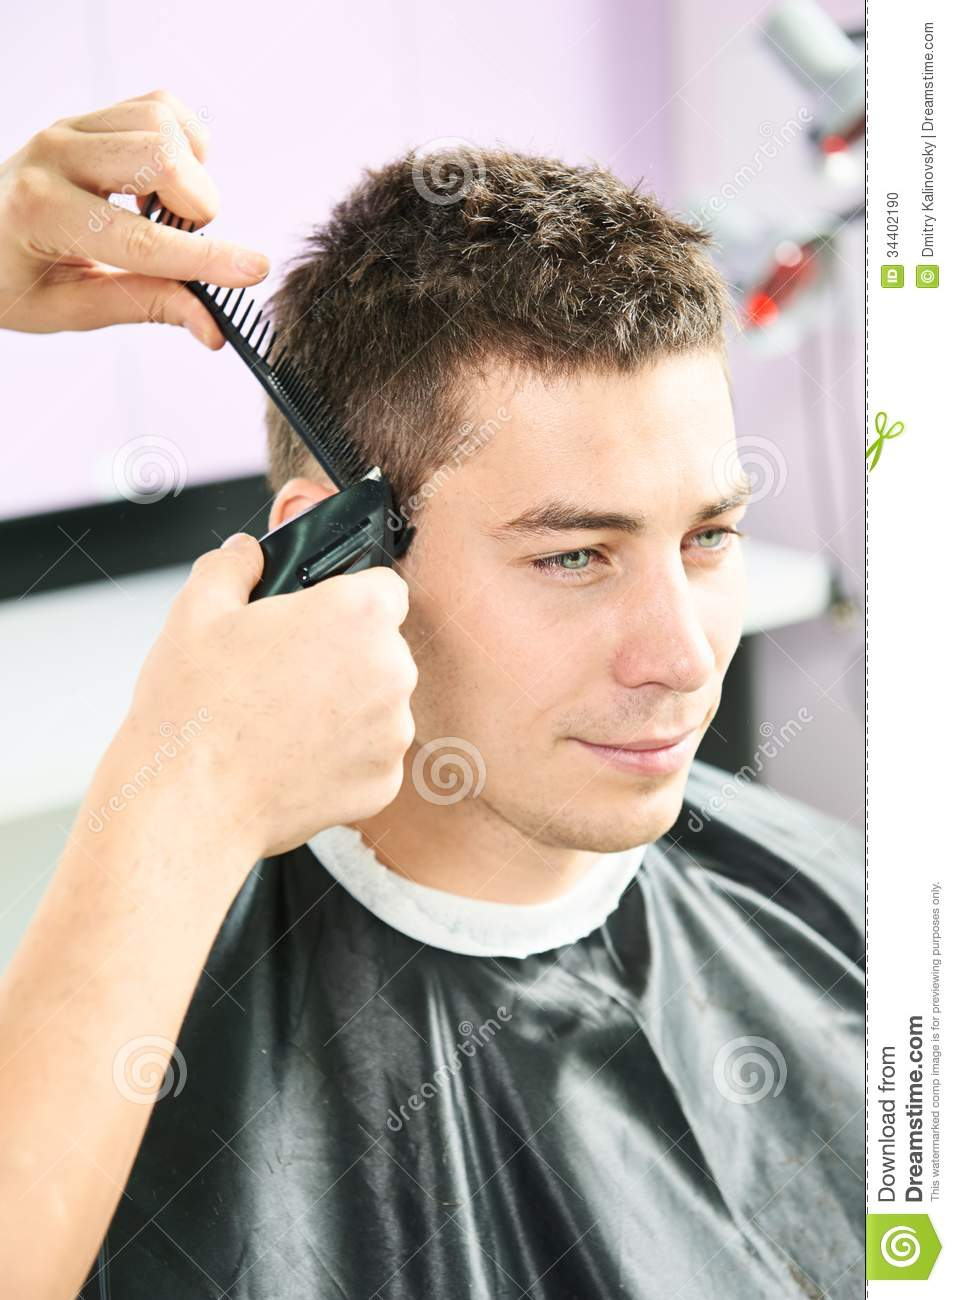 Male hairdresser at work stock photo Image of mirror  34402190